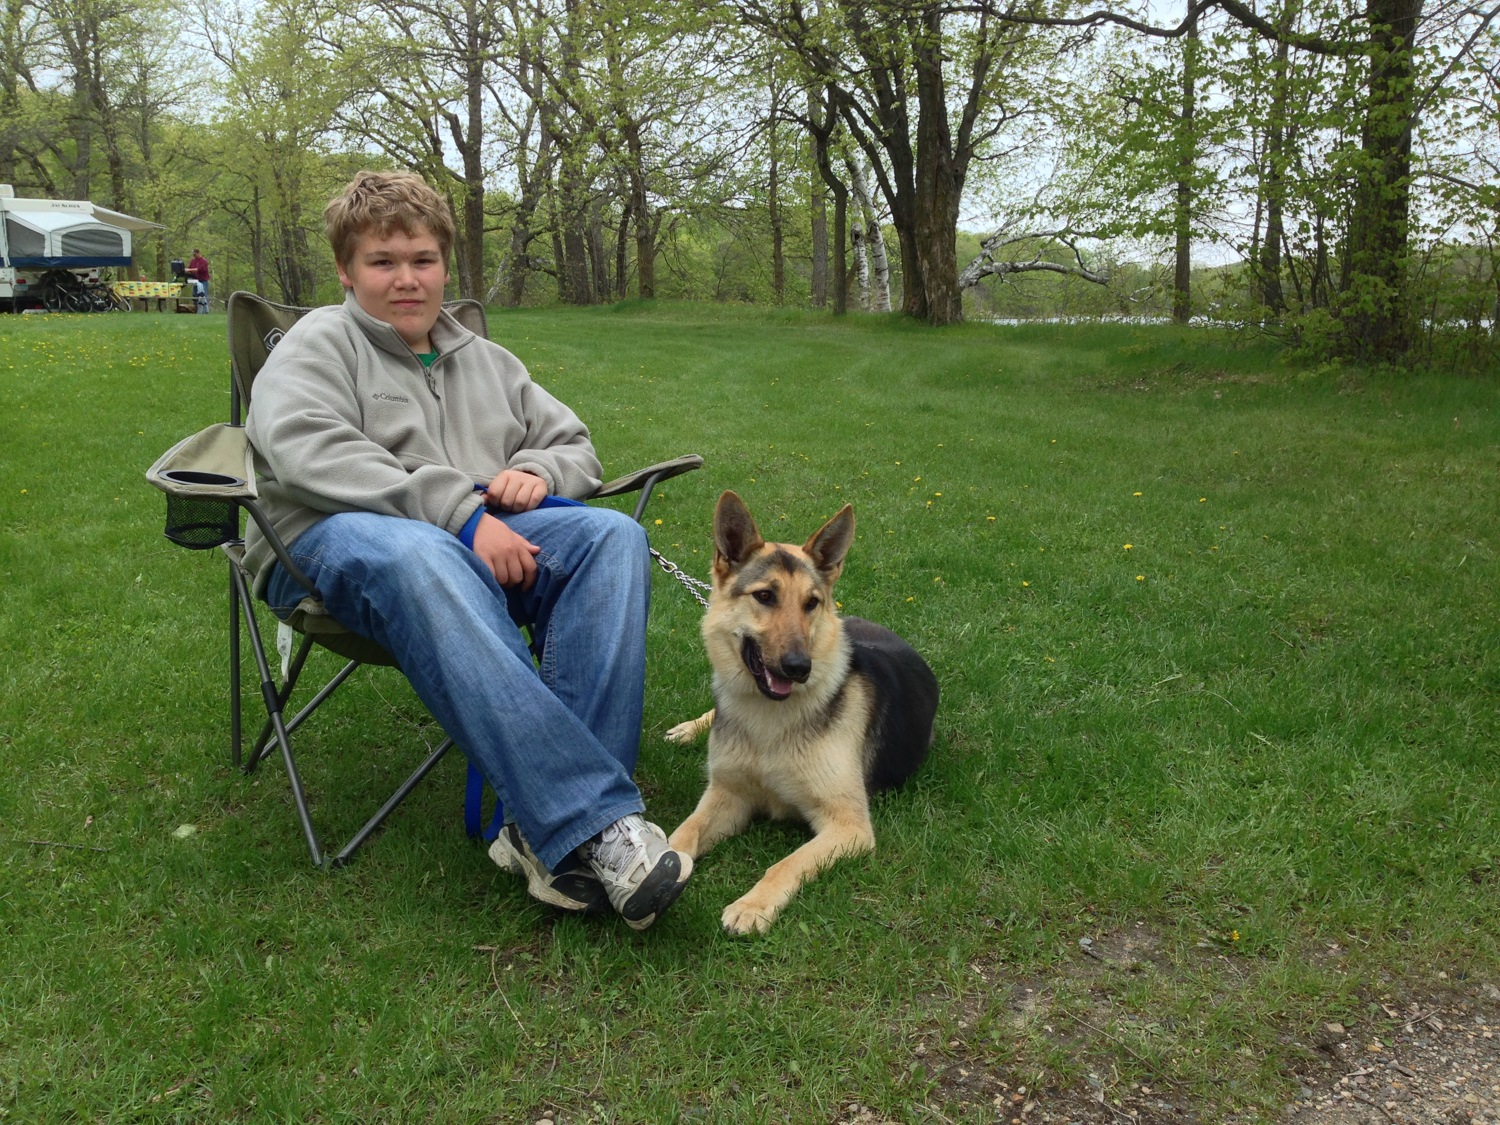 Jacob and Max (the wonder dog) hanging out near the campfire.